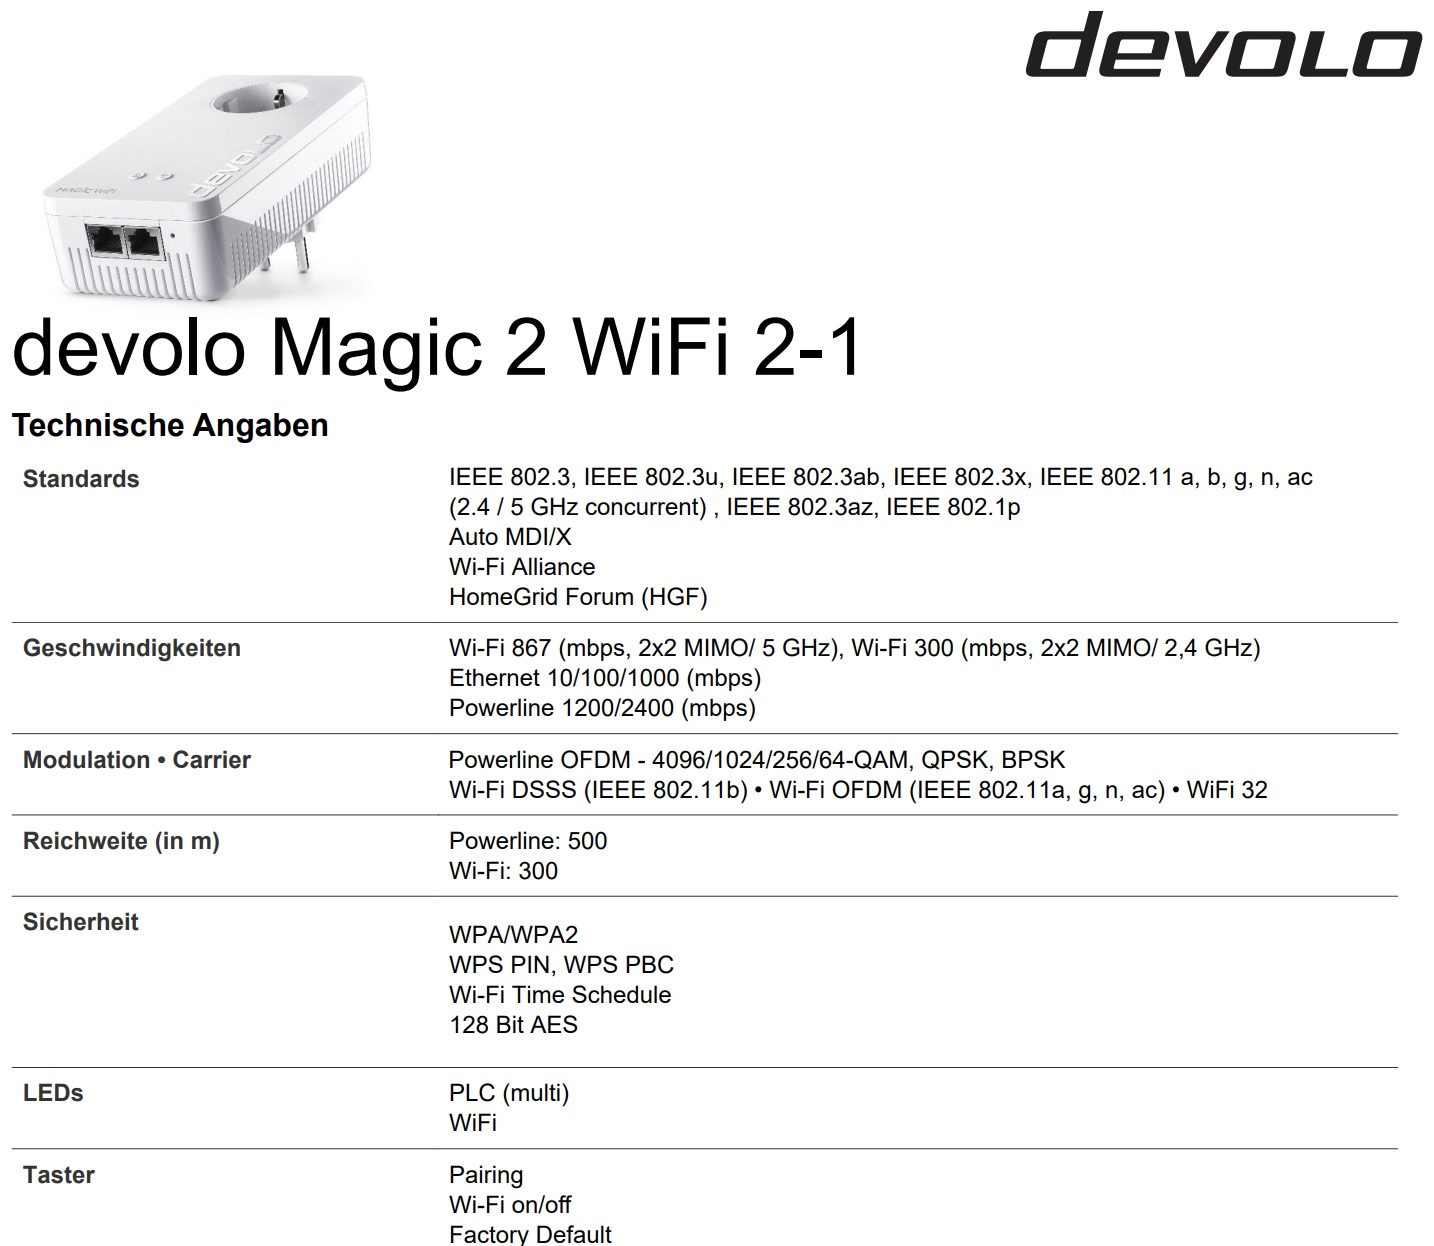 Devolo Magic 2 Specs